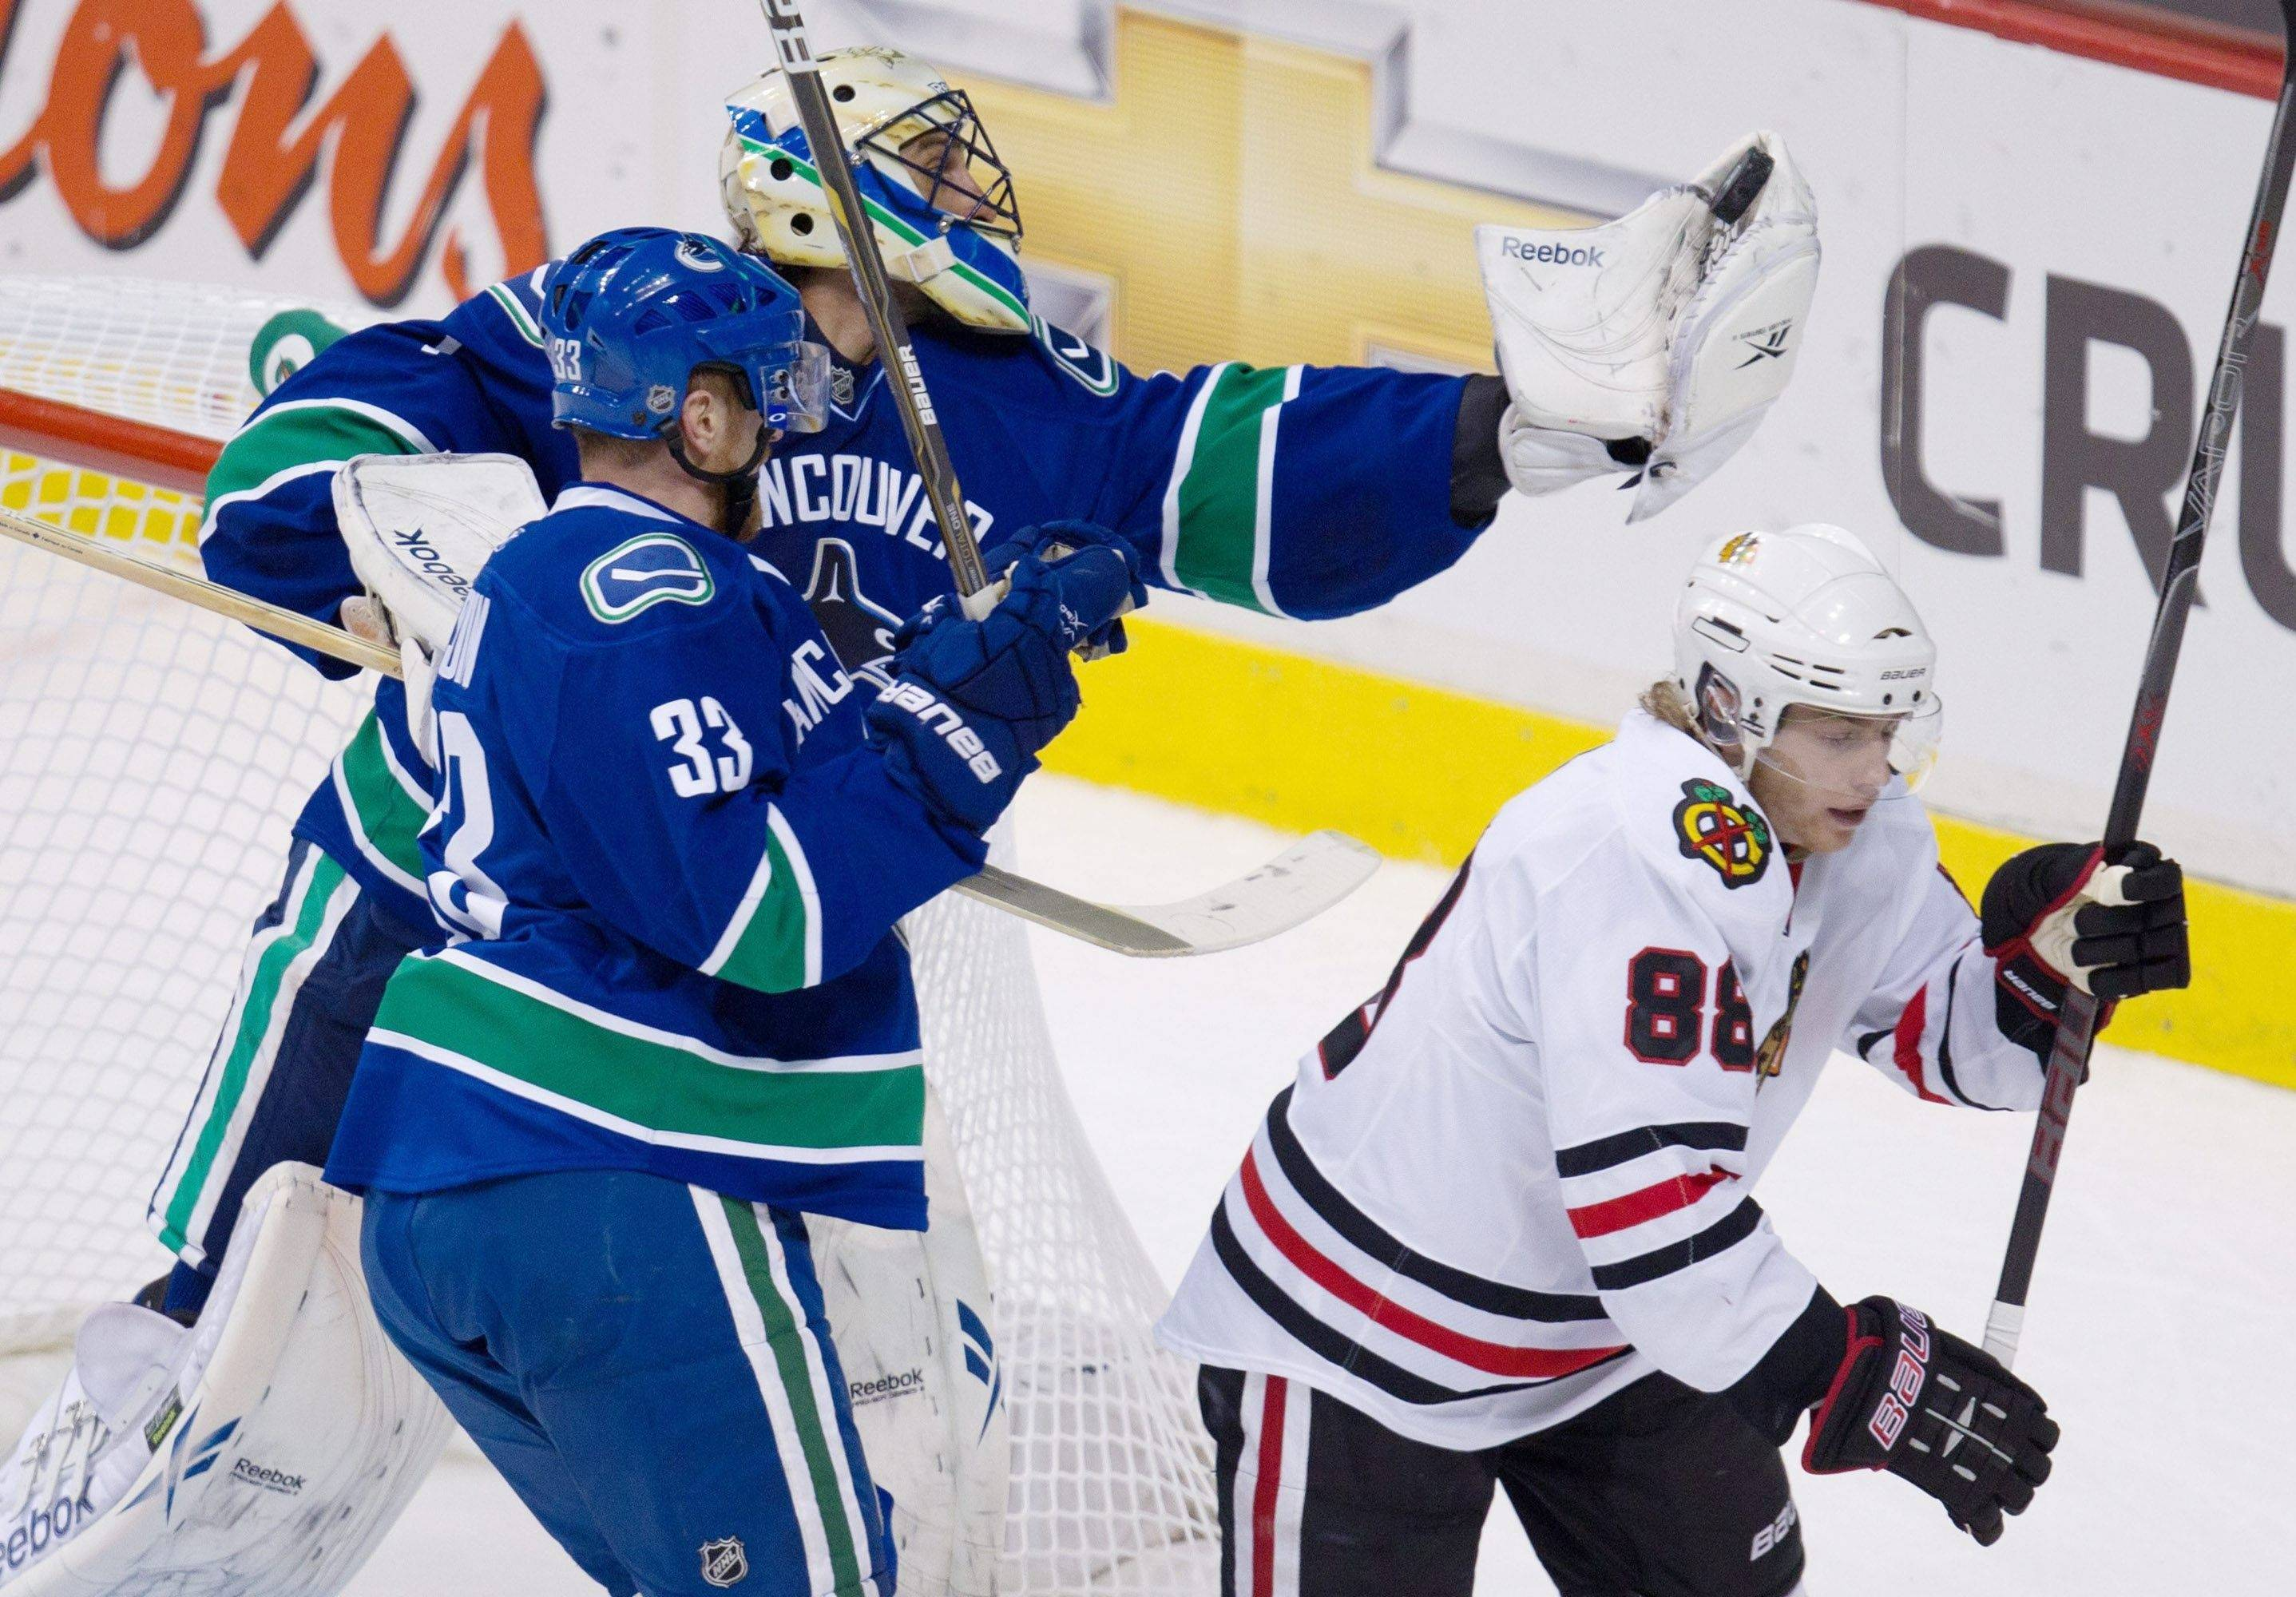 Vancouver Canucks' Roberto Luongo, top, gloves the puck as teammate Henrik Sedin and Chicago Blackhawks' Patrick Kane skate past during the first period Tuesday.